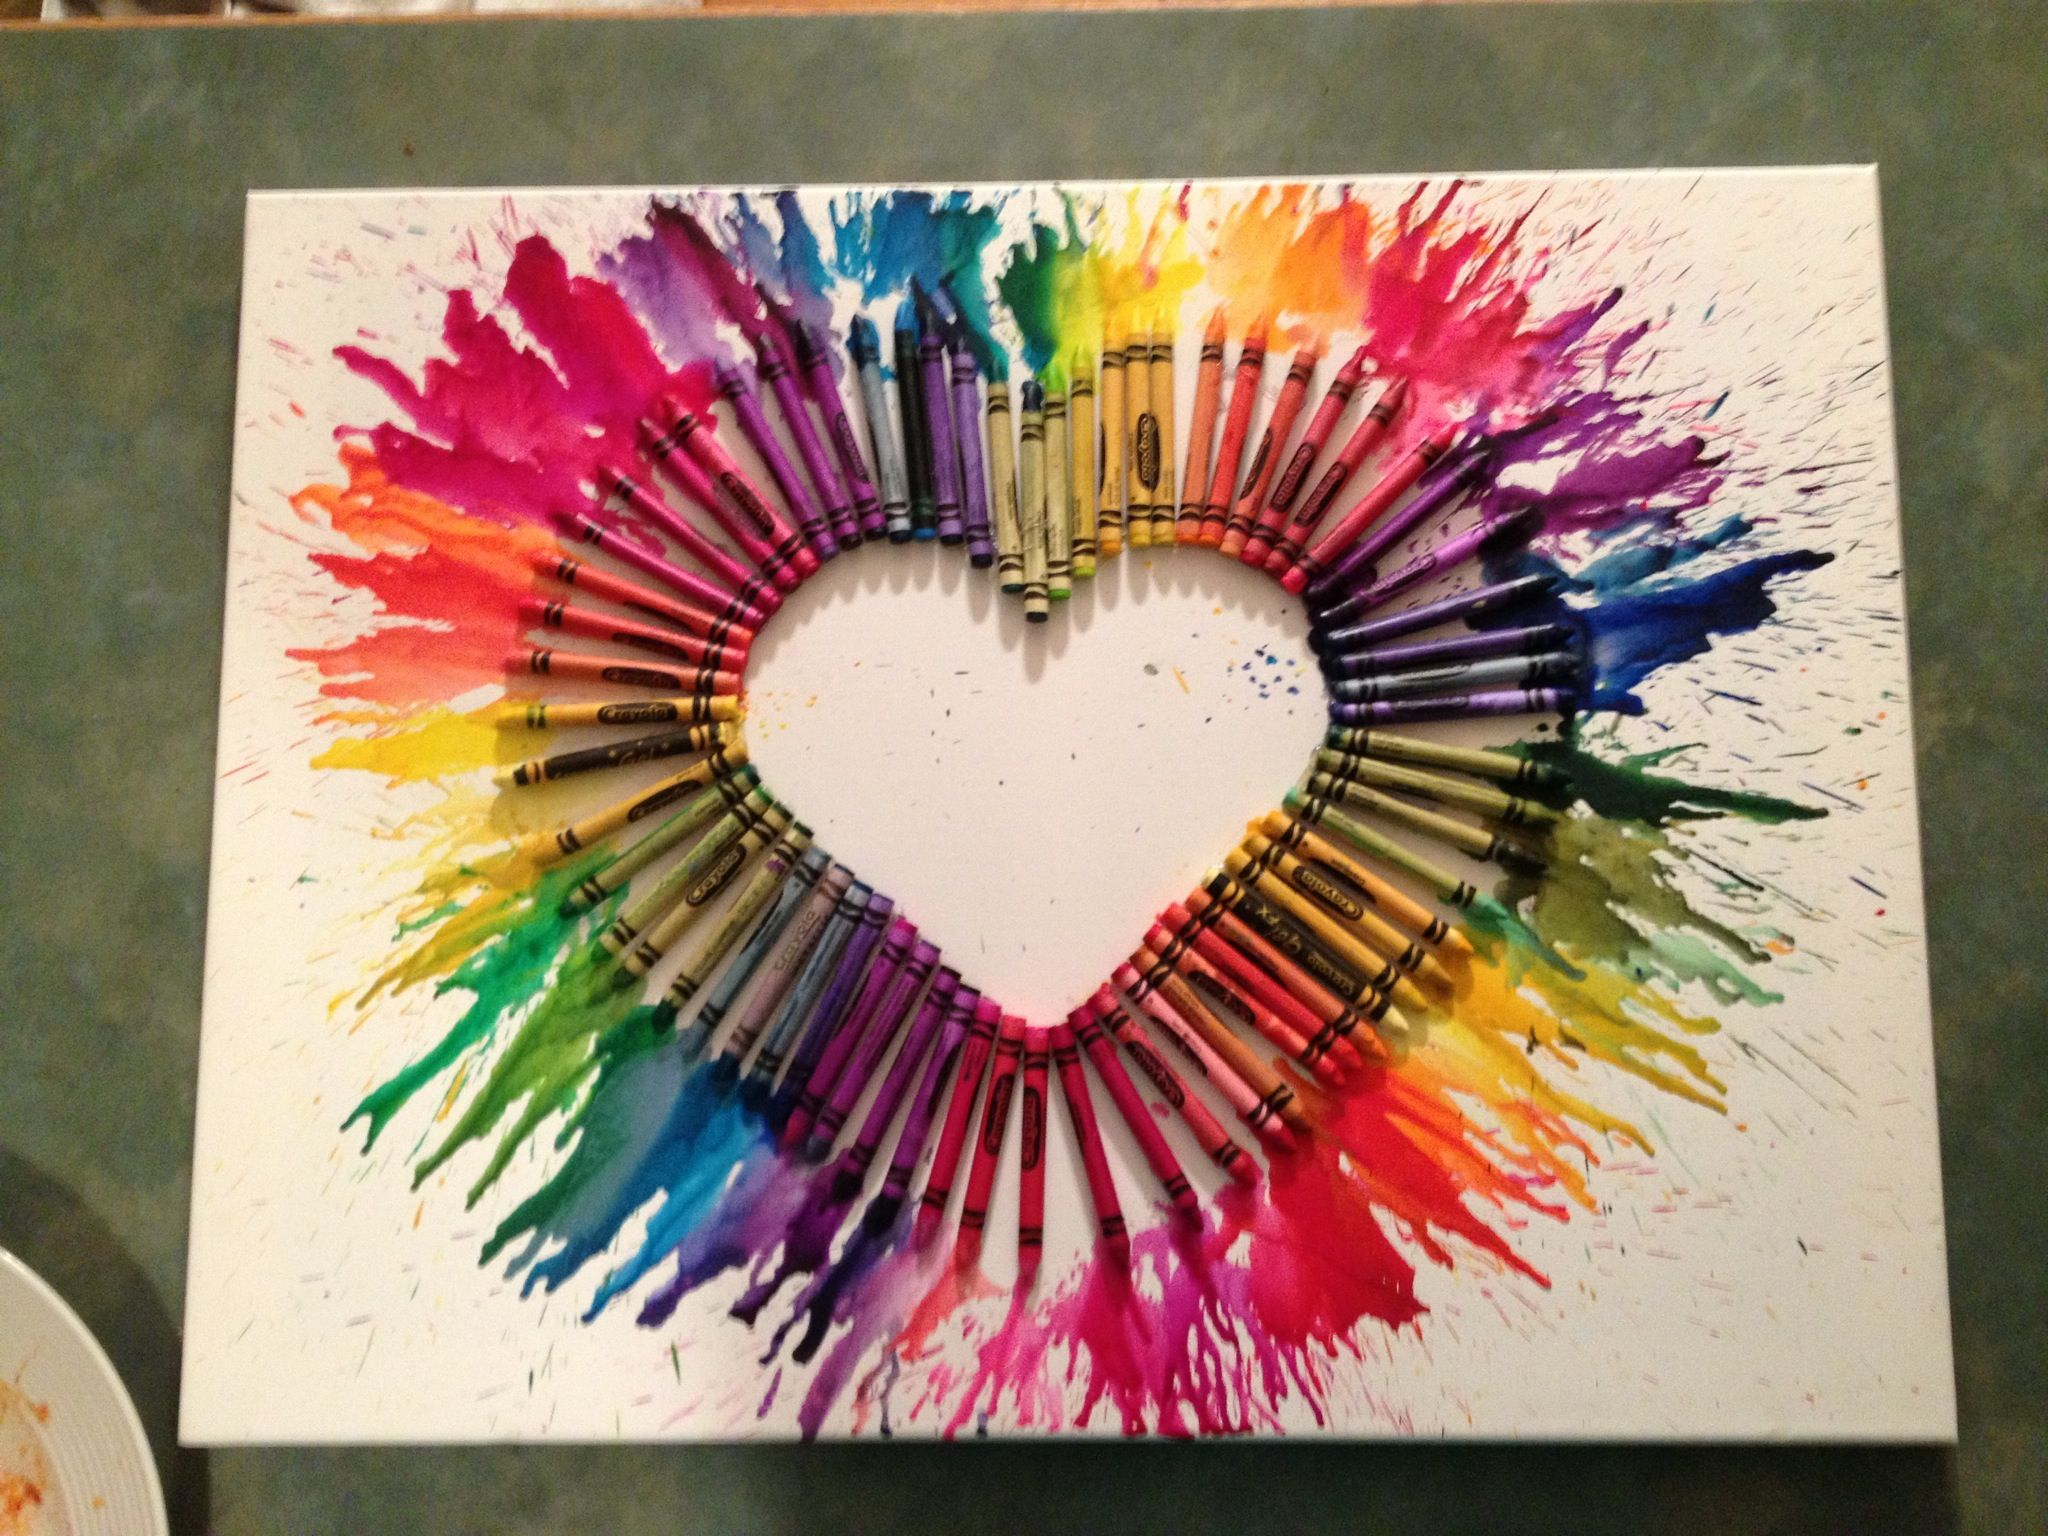 Crayon art arts and crafts project favorite crafts for Pinterest art ideas for adults